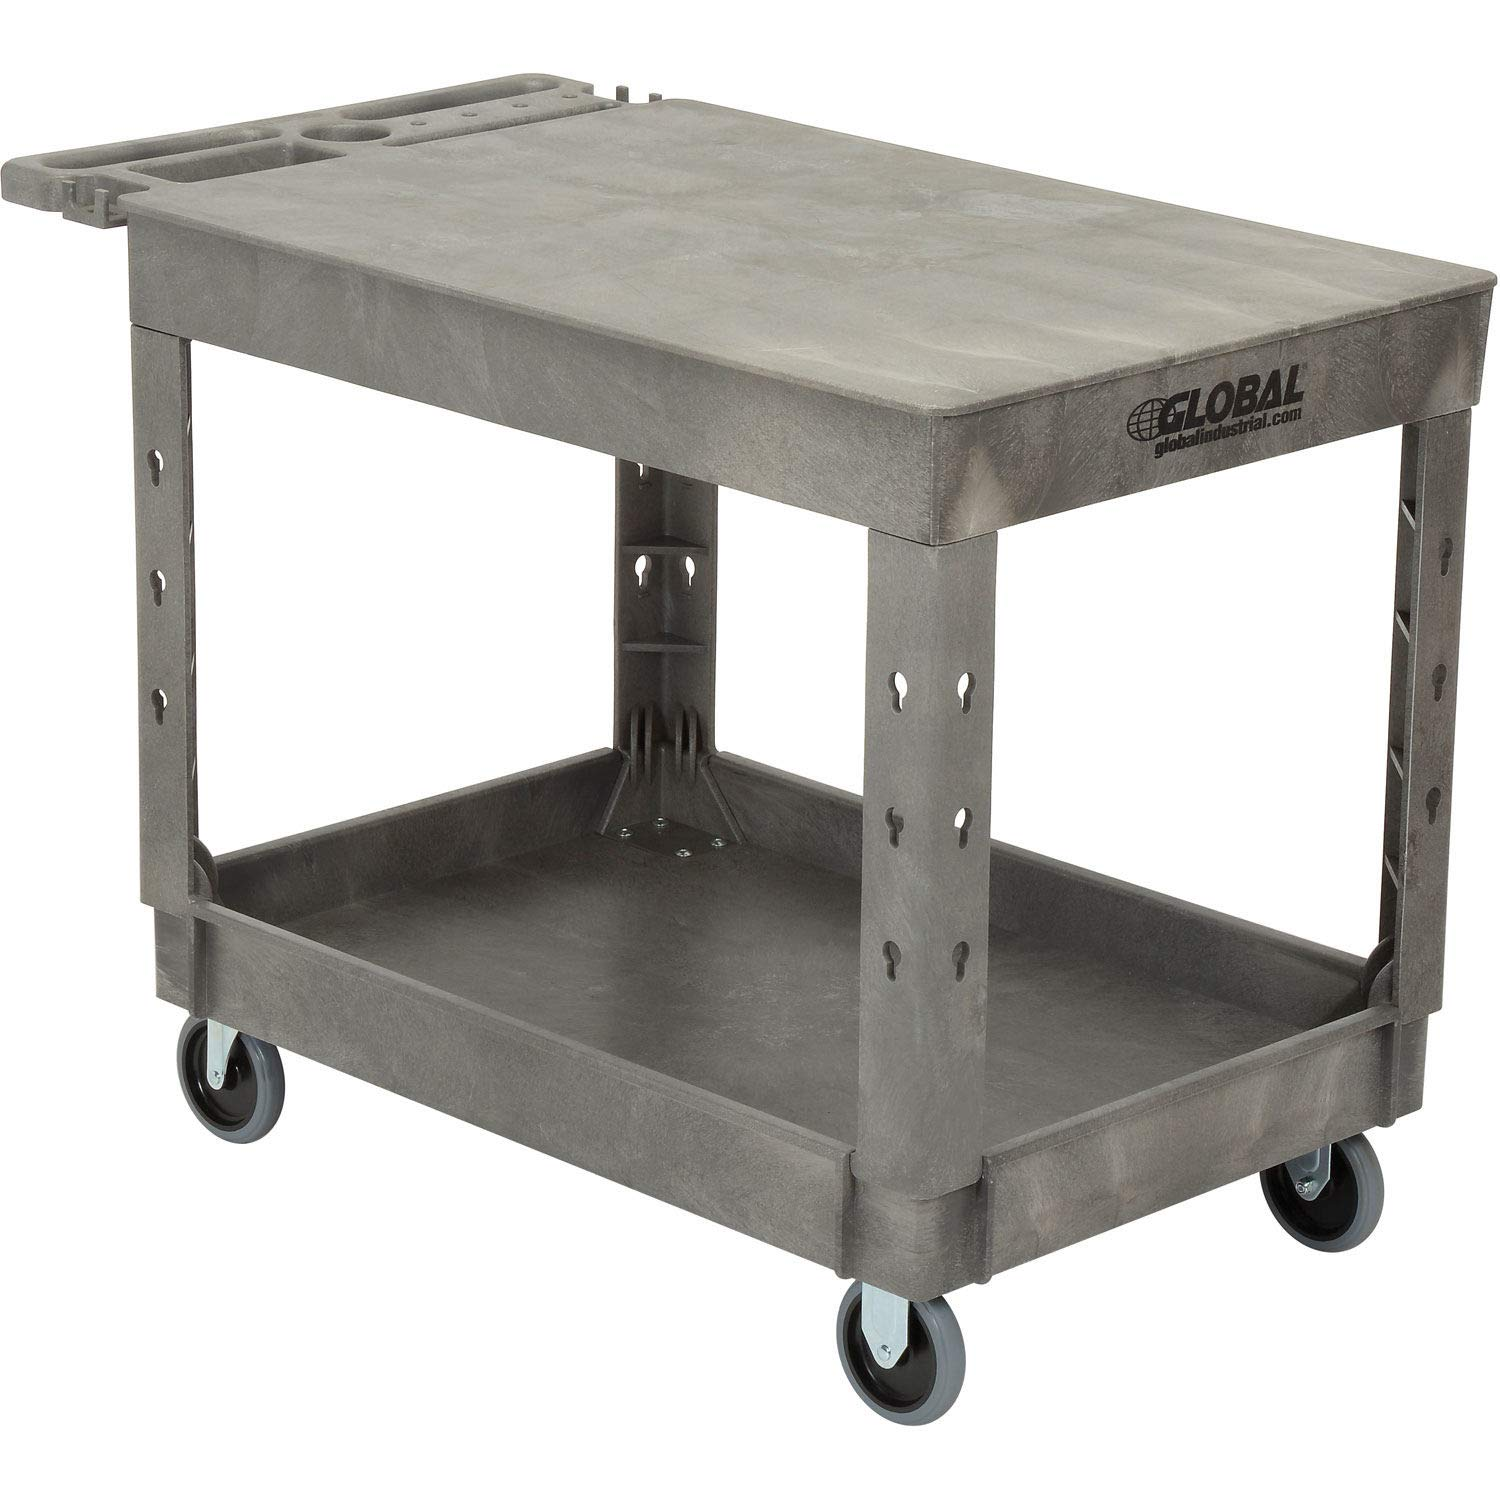 Plastic 2 Flat Shelf Service & Utility Cart, 44'' x 25-1/2'', 5'' Rubber Caster, Lot of 1 by Global Industrial